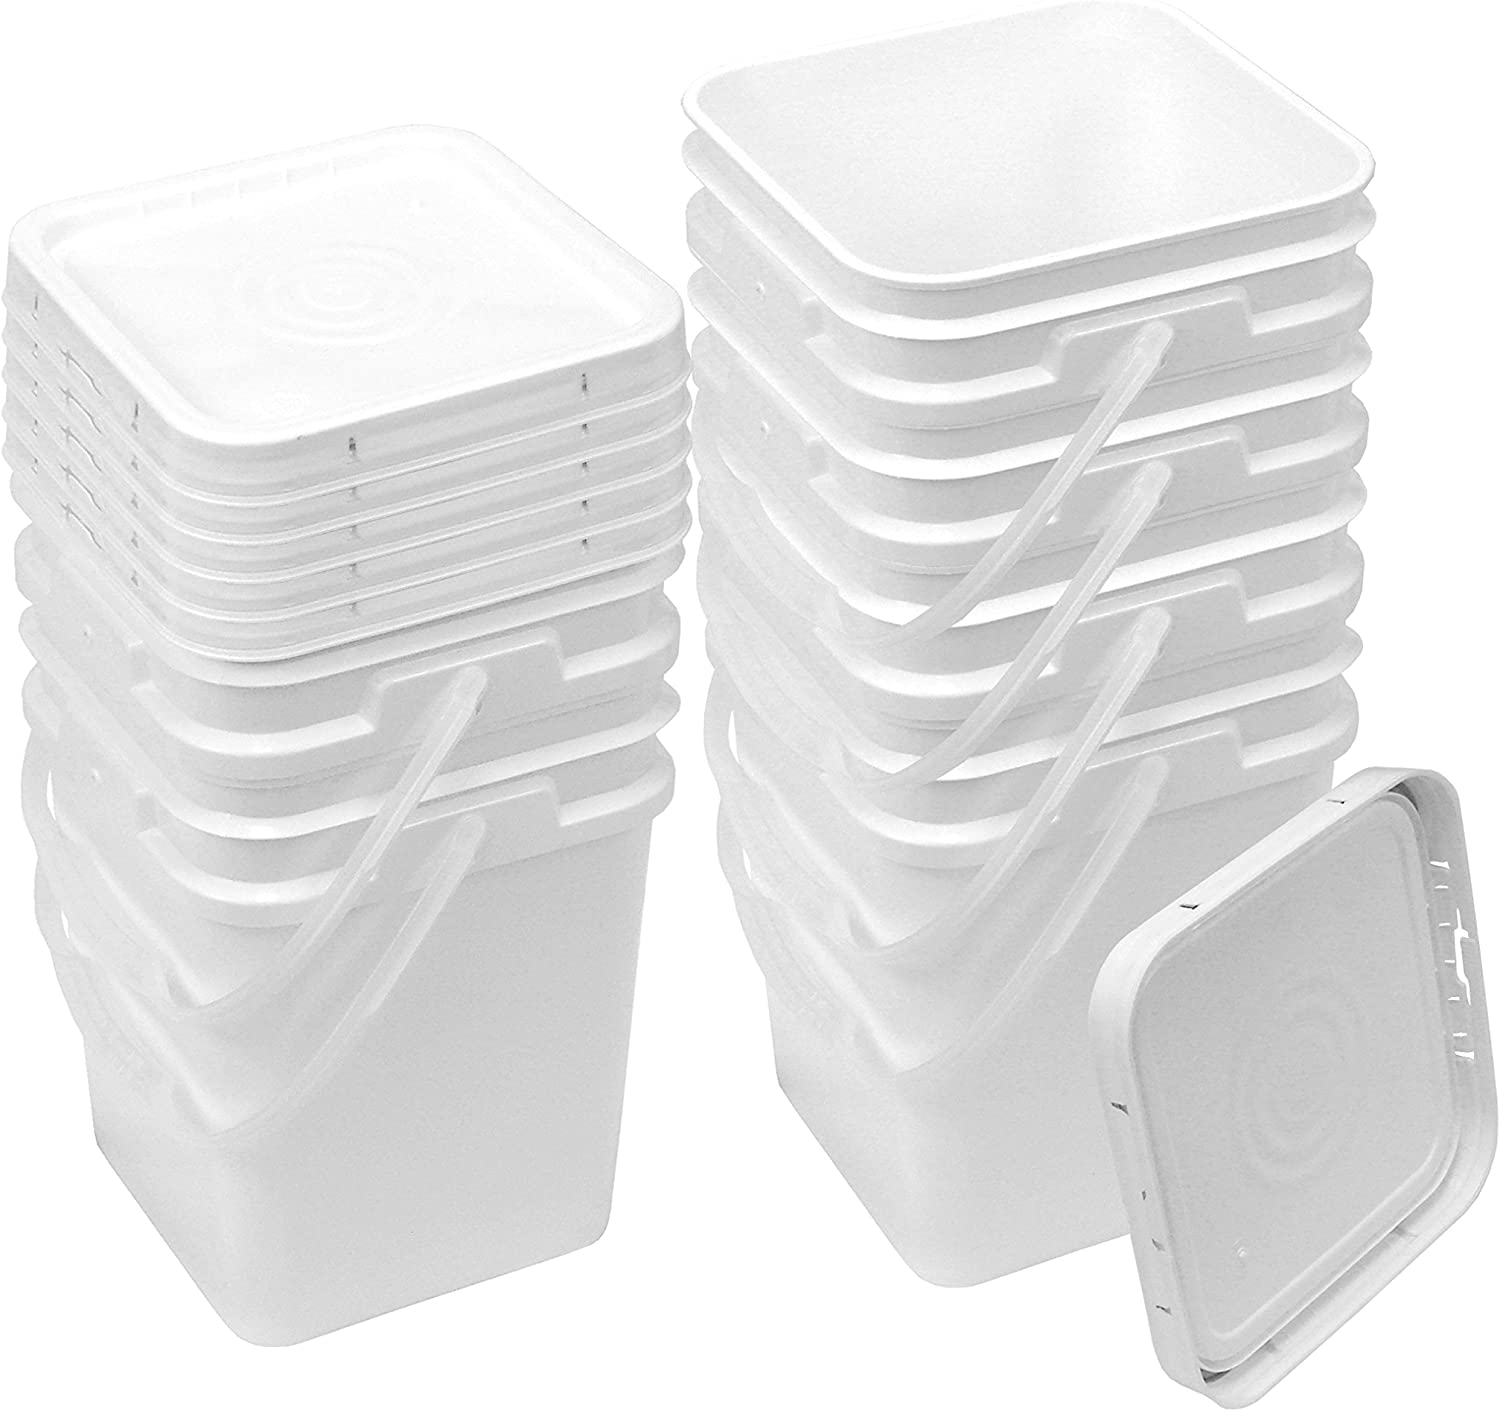 Square Bucket Kit, Six 4-Gallon Buckets and Six White Snap-on Lids with Gaskets